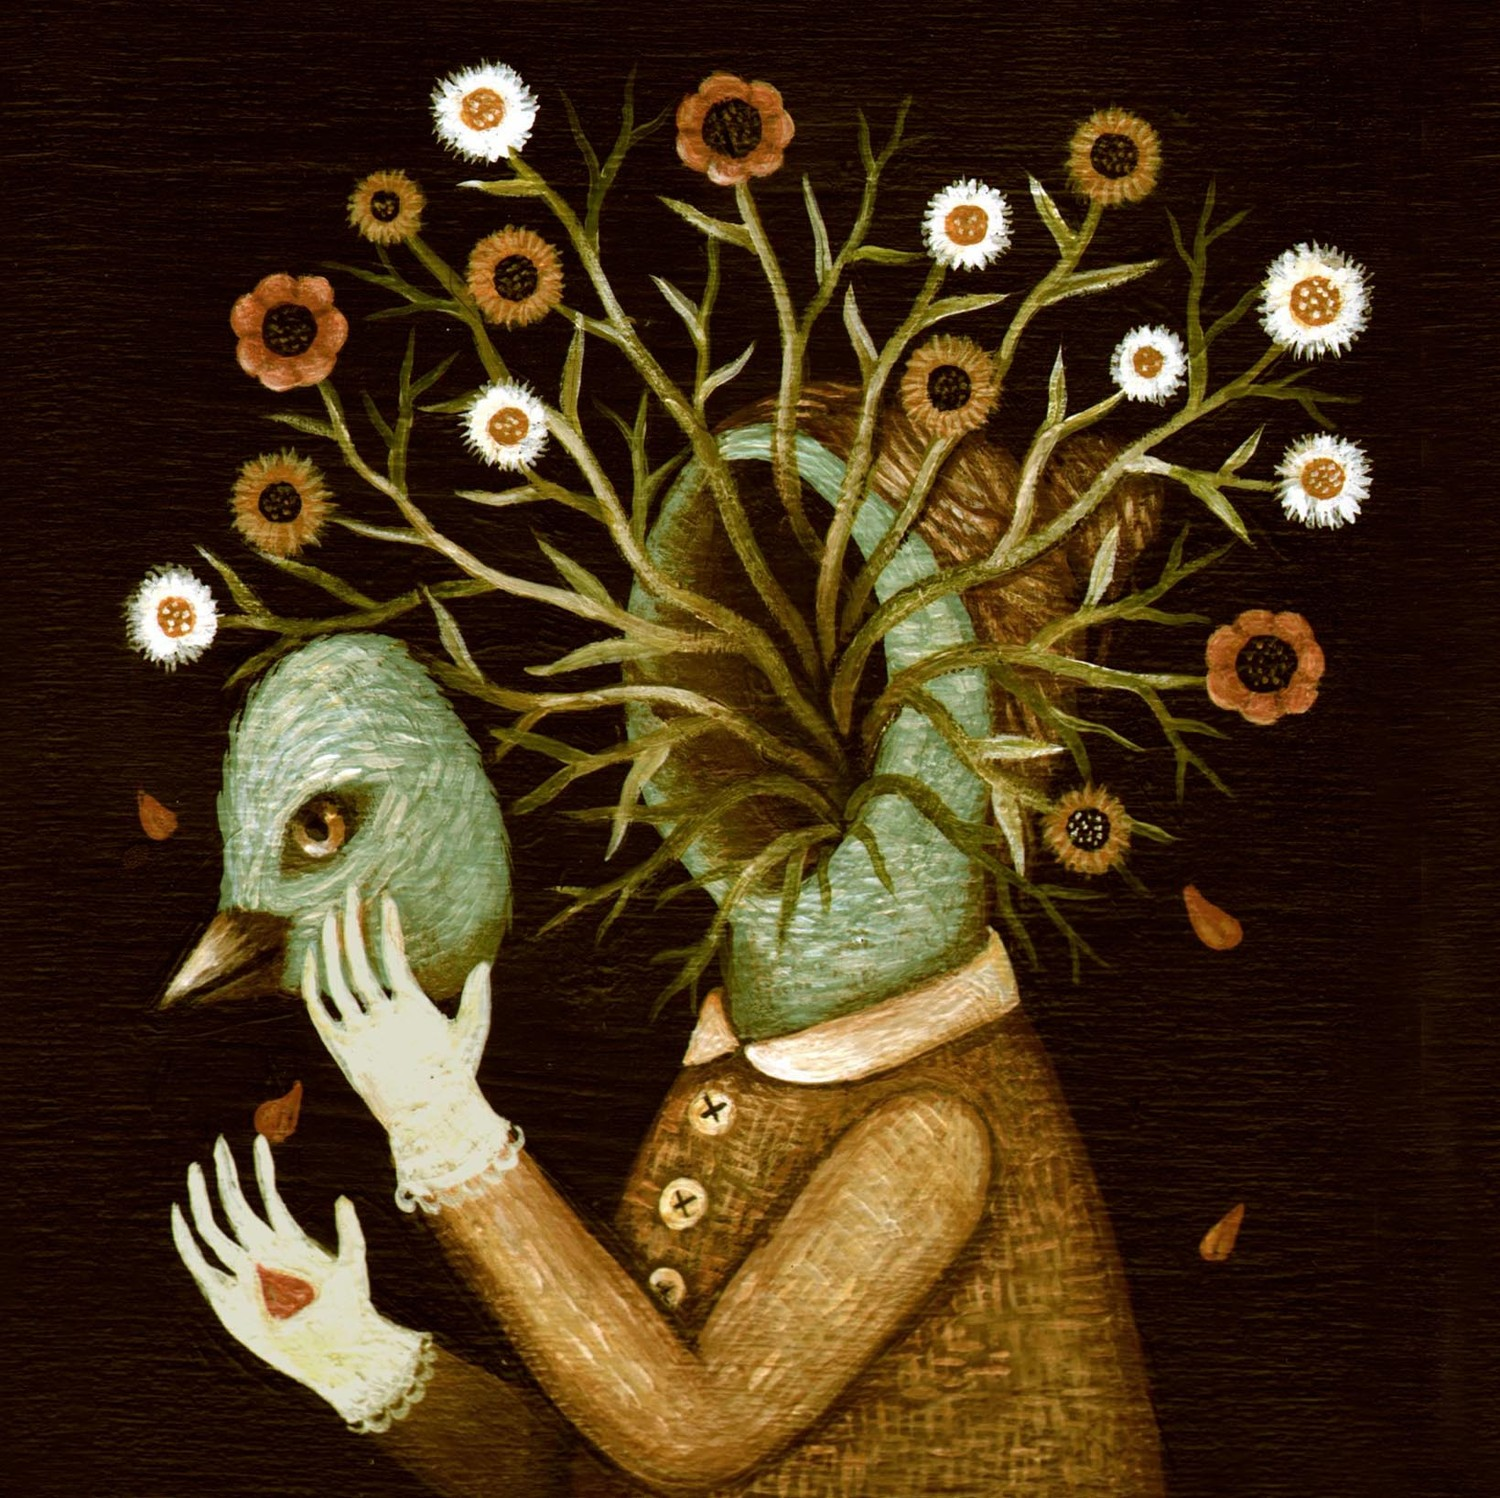 Wild Inside. By Kathleen Lolley, 2011.